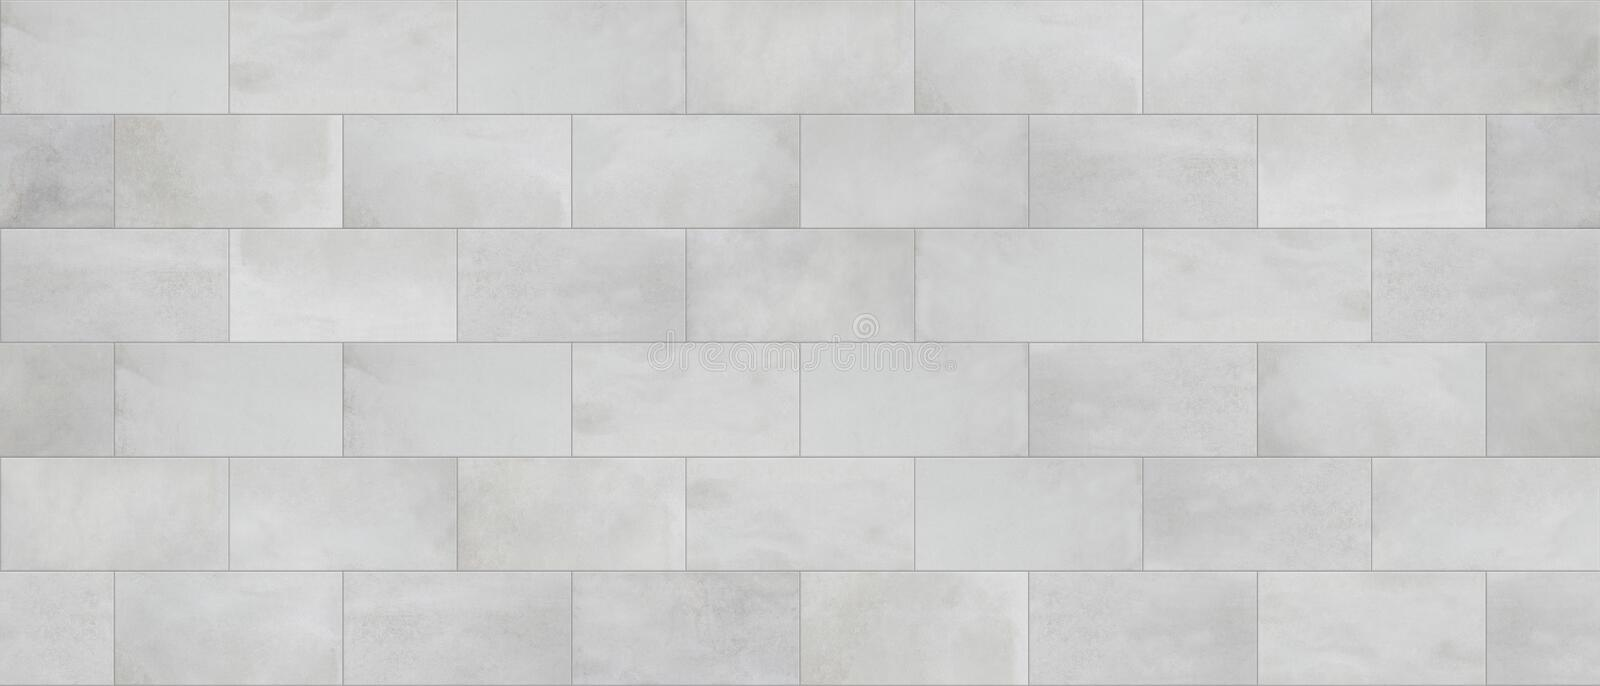 Concrete tile, cinder block wall cladding, seamless texture. Cinder block wall cladding seamless mapping royalty free illustration